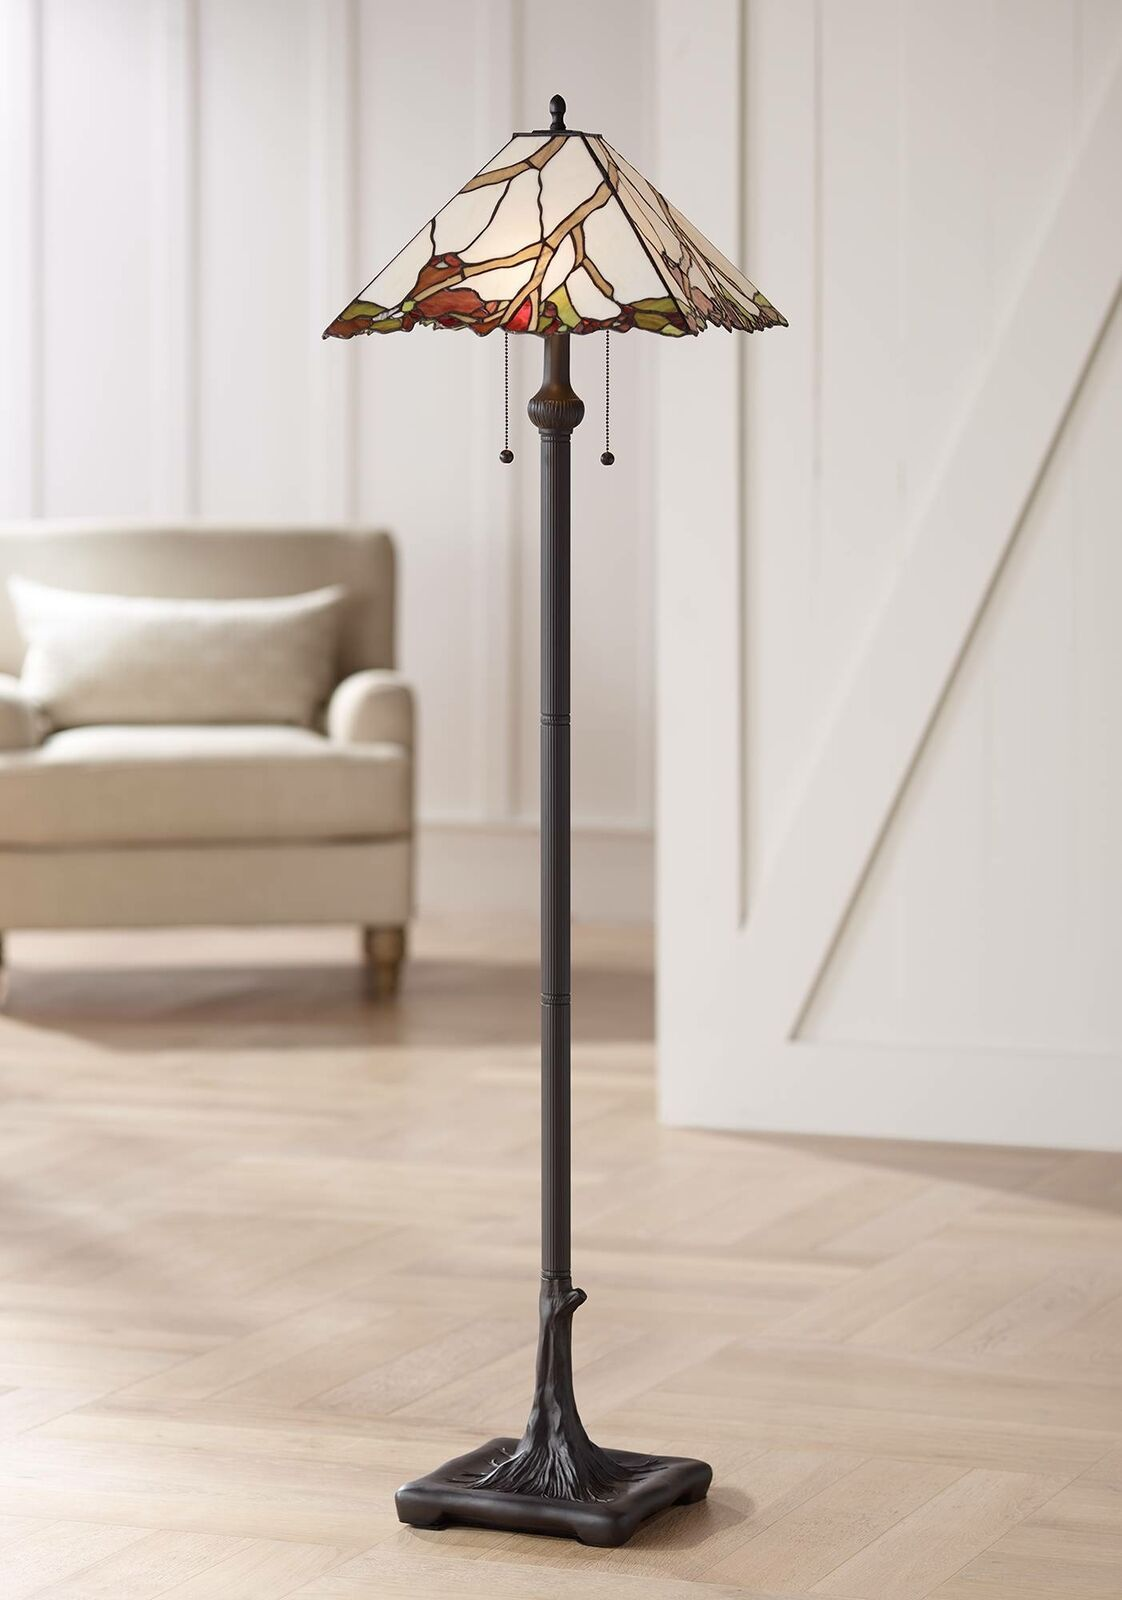 Tiffany Style Floor Lamp Bronze Cherry Blossom Stained Glass For